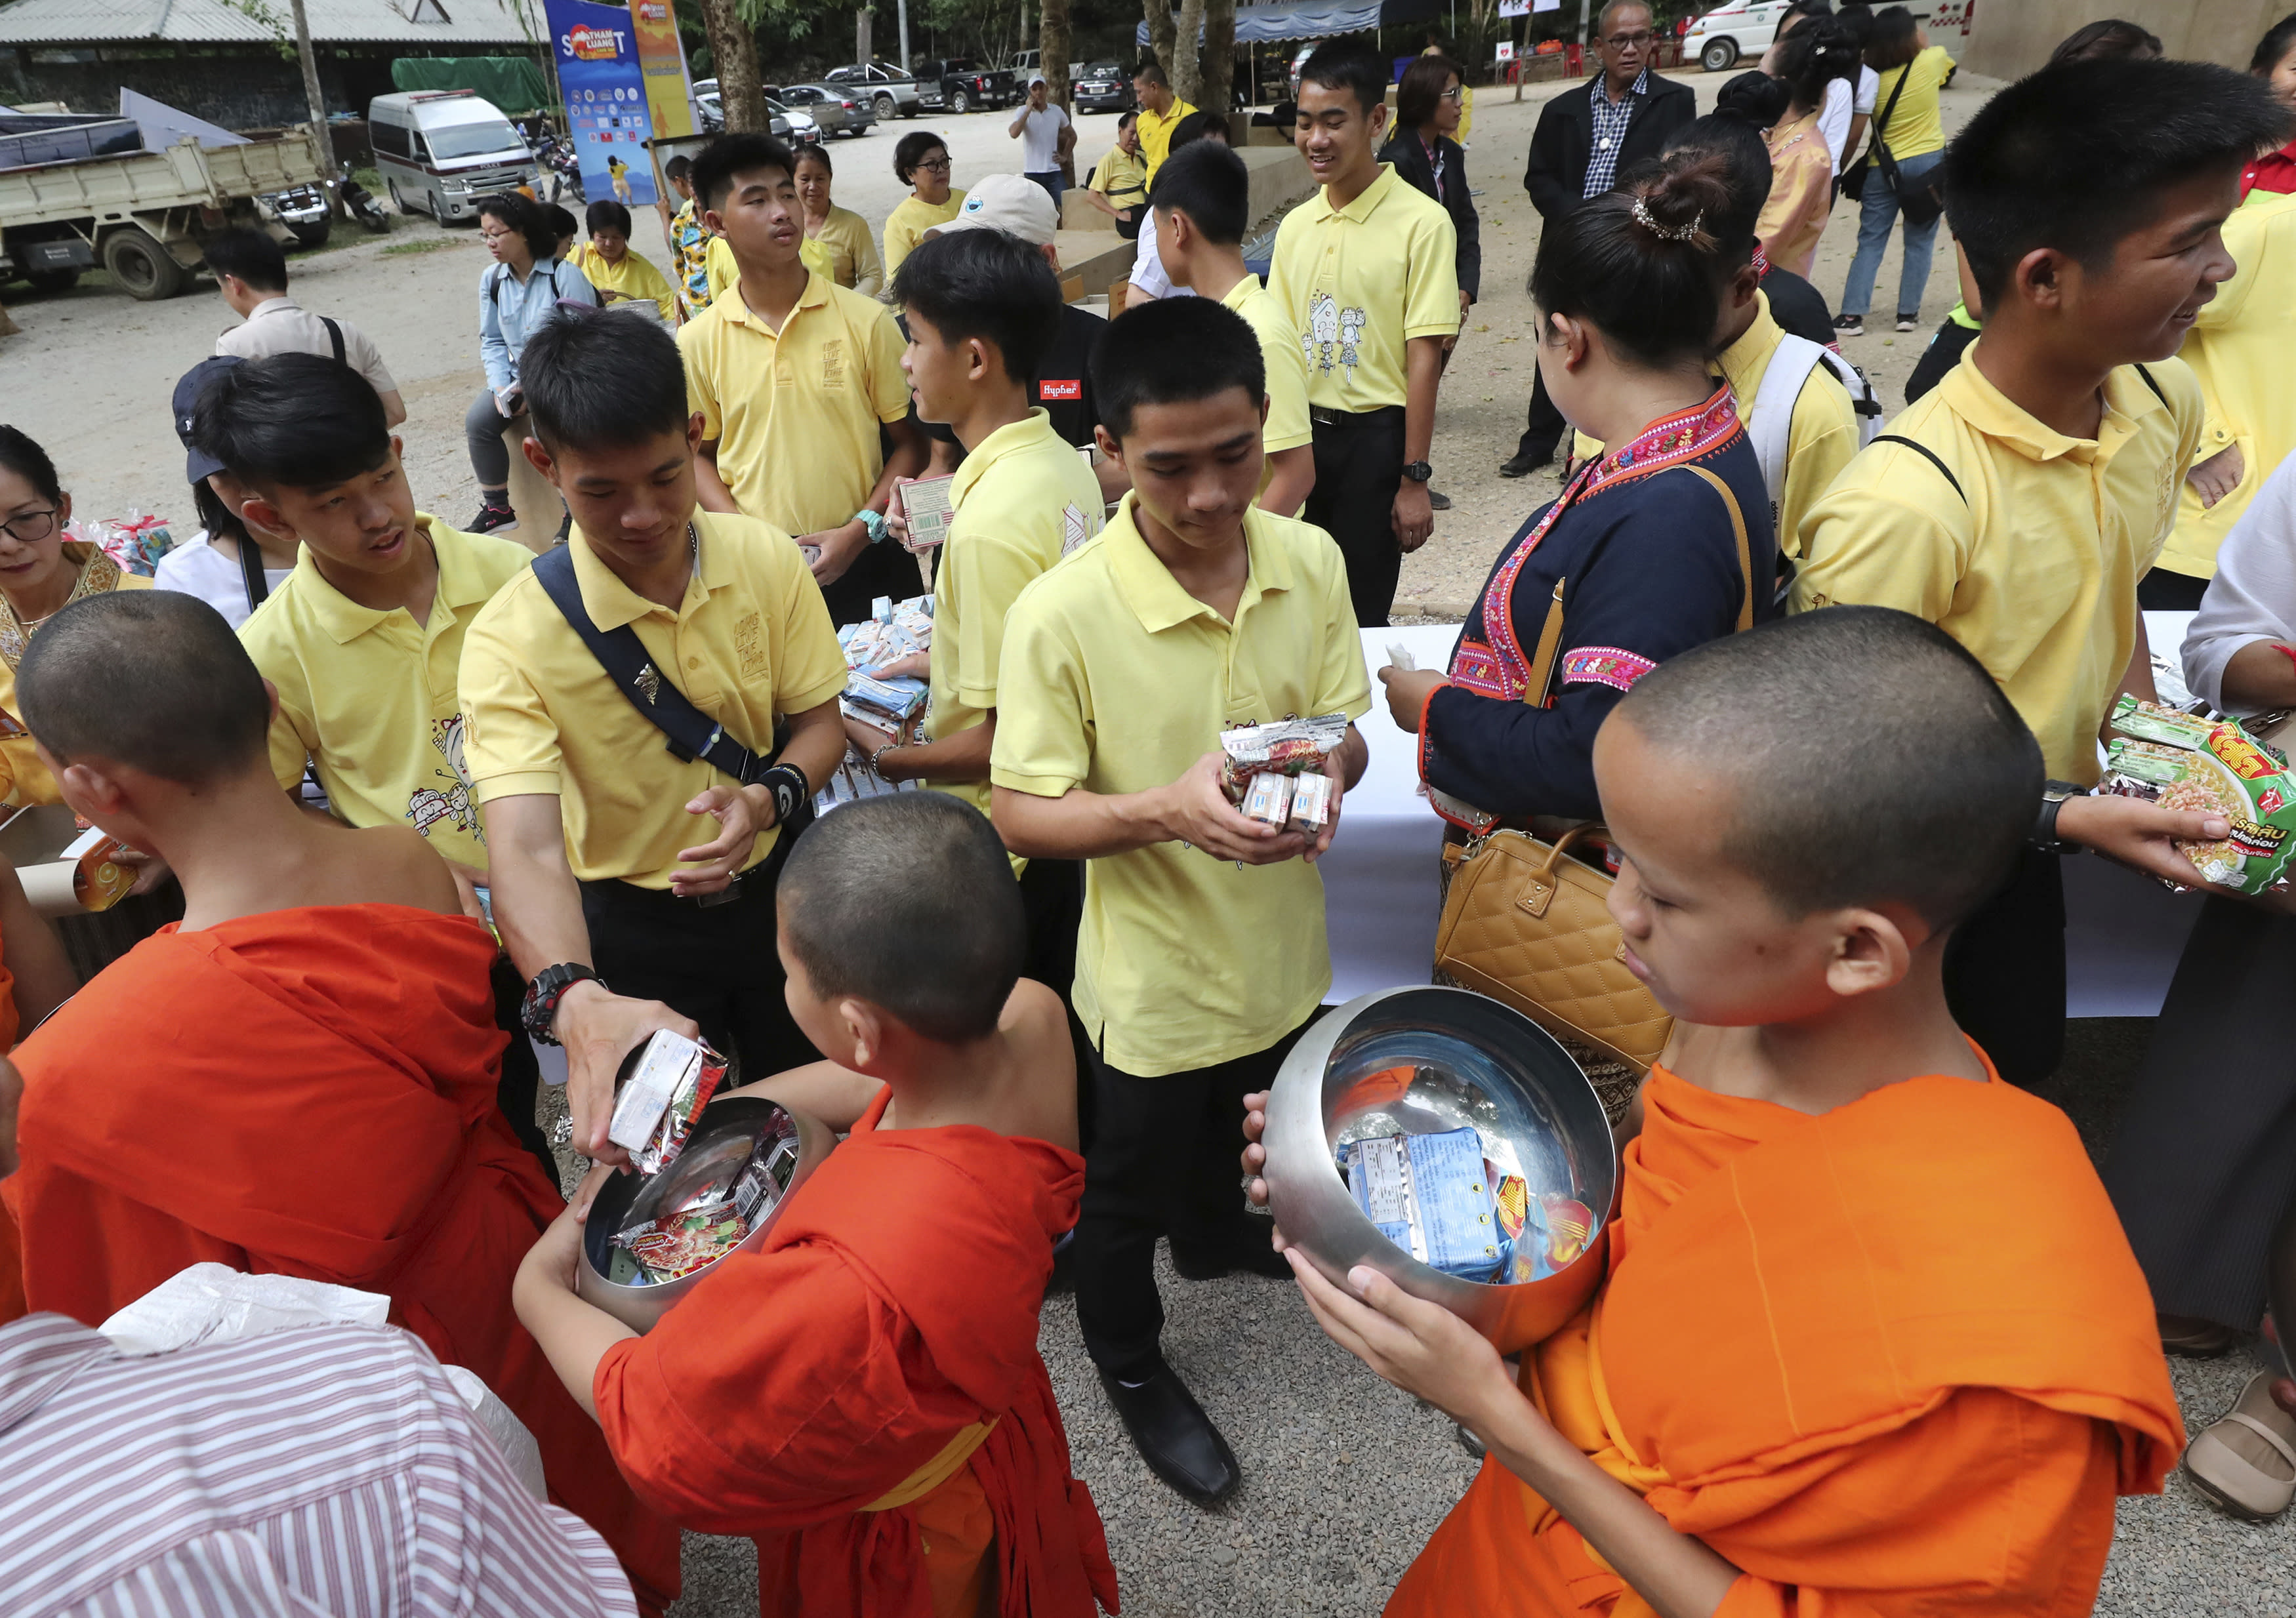 Members of the Wild Boars soccer team who were rescued from a flooded cave, offer foods to Buddhist monks near the Tham Luang cave in Mae Sai, Chiang Rai province, Thailand Monday, June 24, 2019. The 12 boys and their coach attended a Buddhist merit-making ceremony at the Tham Luang to commemorate the one-year anniversary of their ordeal that saw them trapped in a flooded cave for more than two weeks. (AP Photo/Sakchai Lalit)